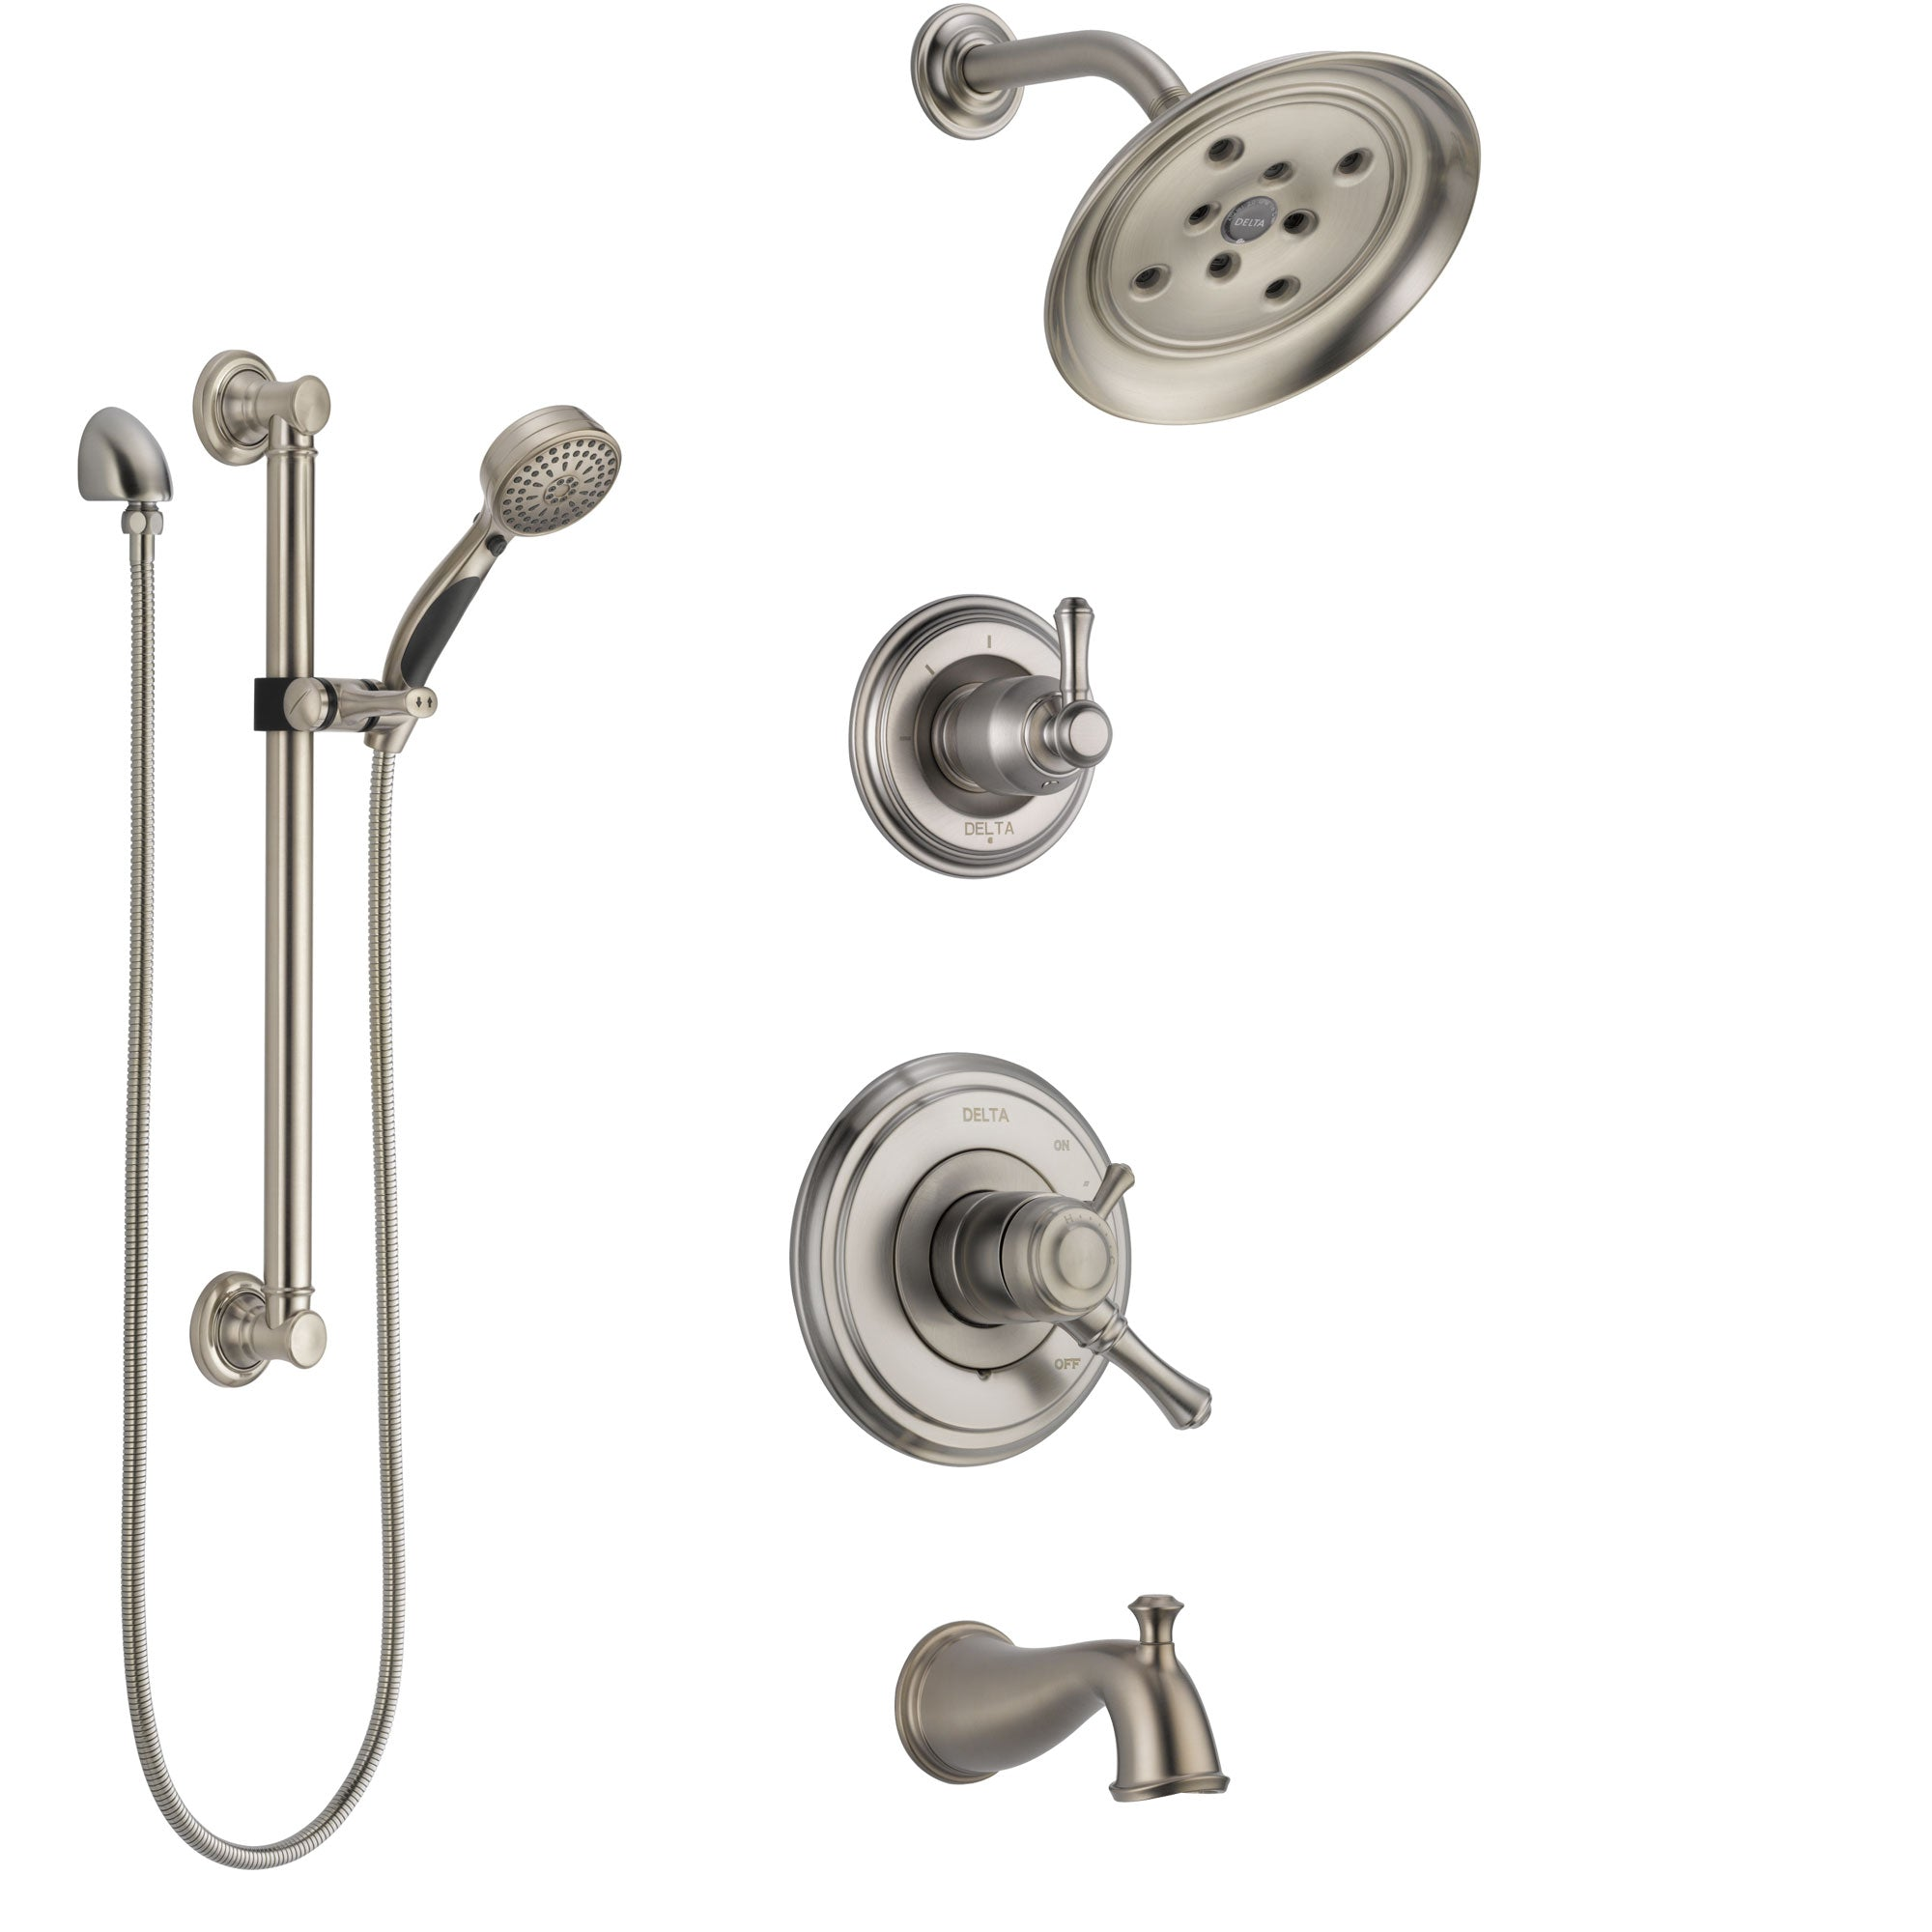 Delta Cassidy Stainless Steel Finish Tub and Shower System with Dual Control Handle, Diverter, Showerhead, and Hand Shower with Grab Bar SS17497SS3